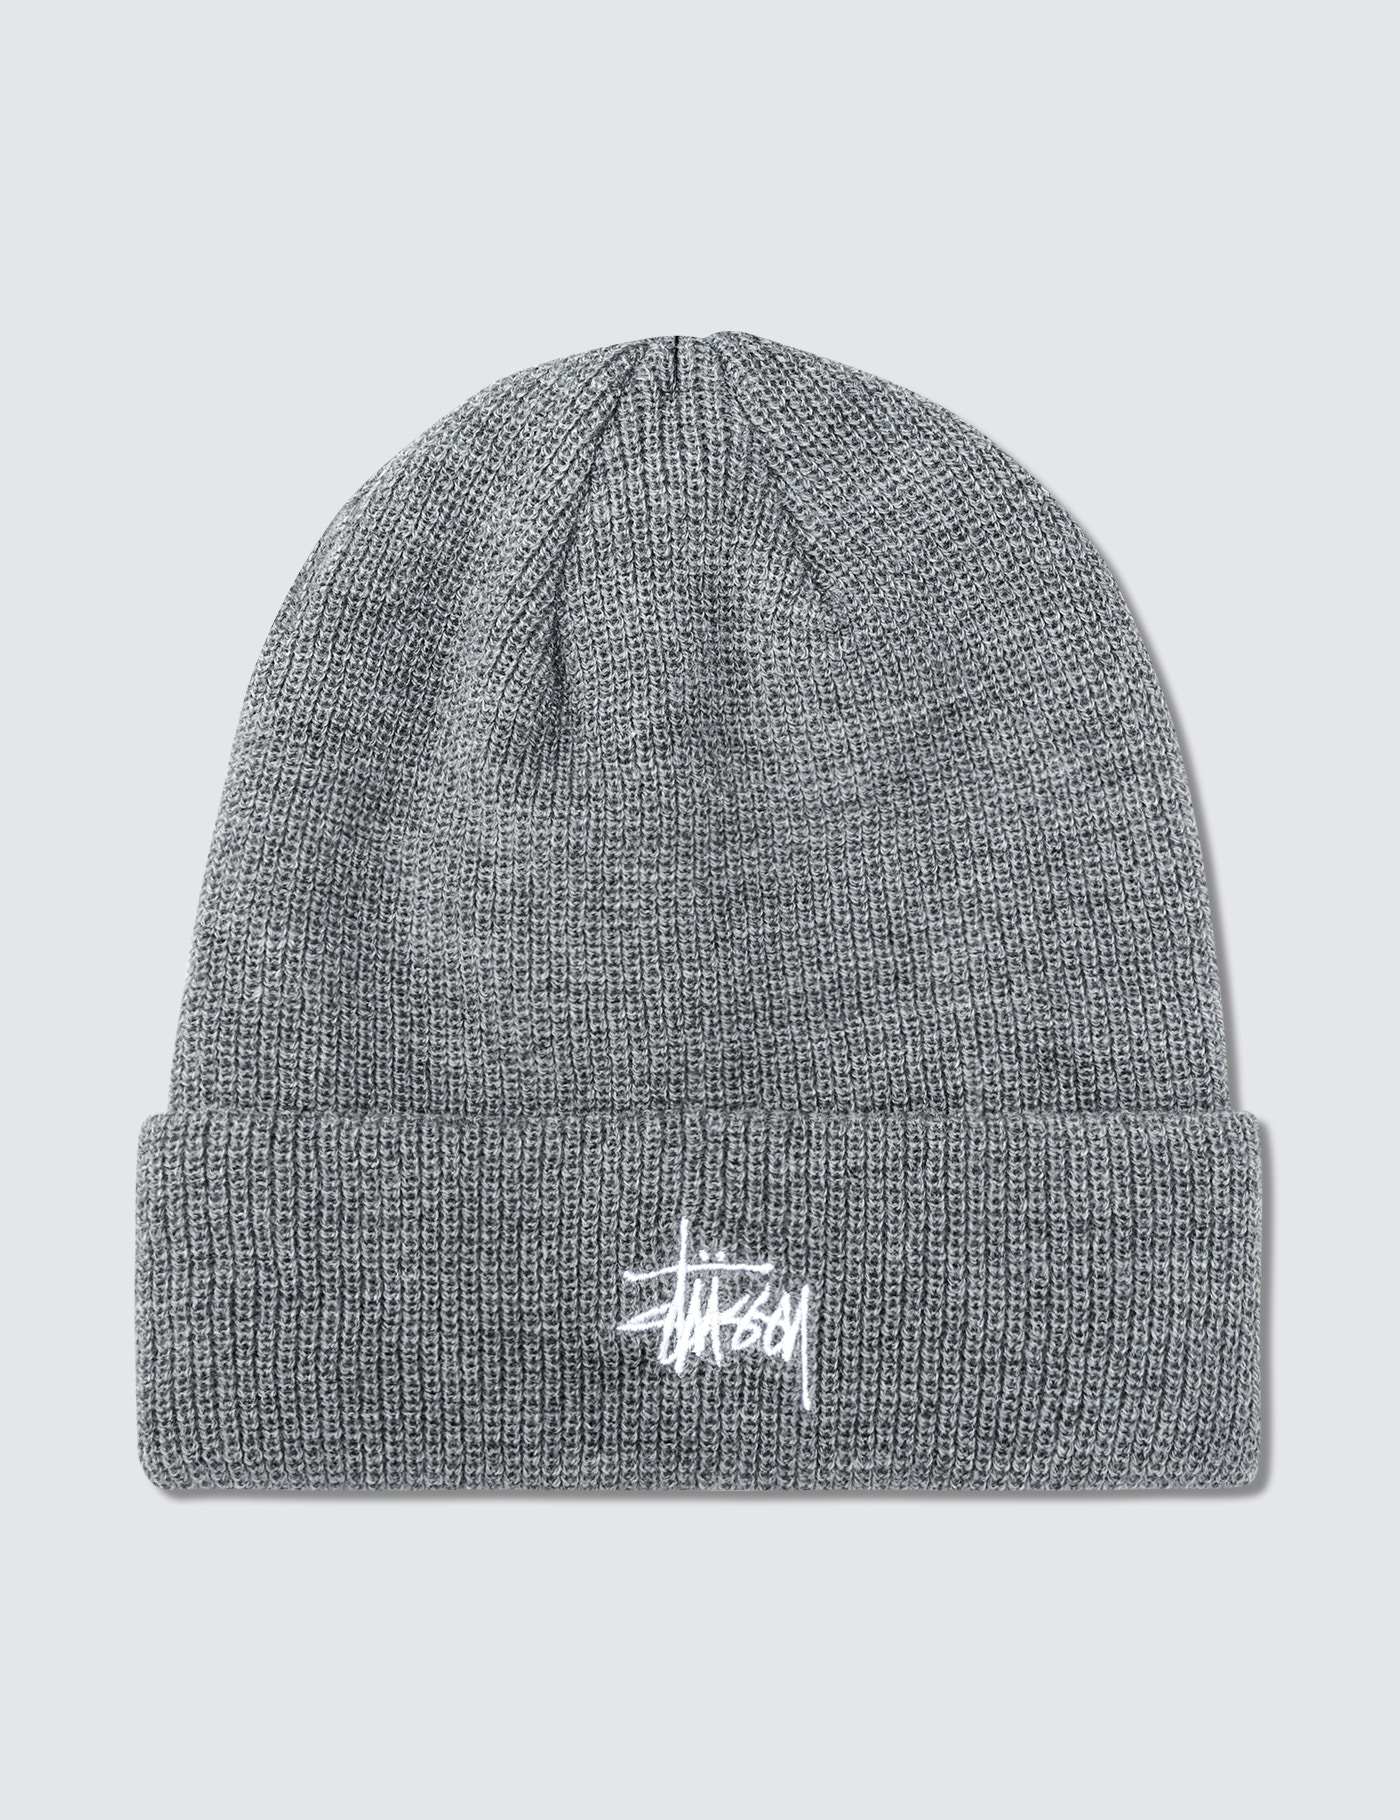 9d9f45b6426 Buy Original Stussy Basic Cuff Beanie at Indonesia